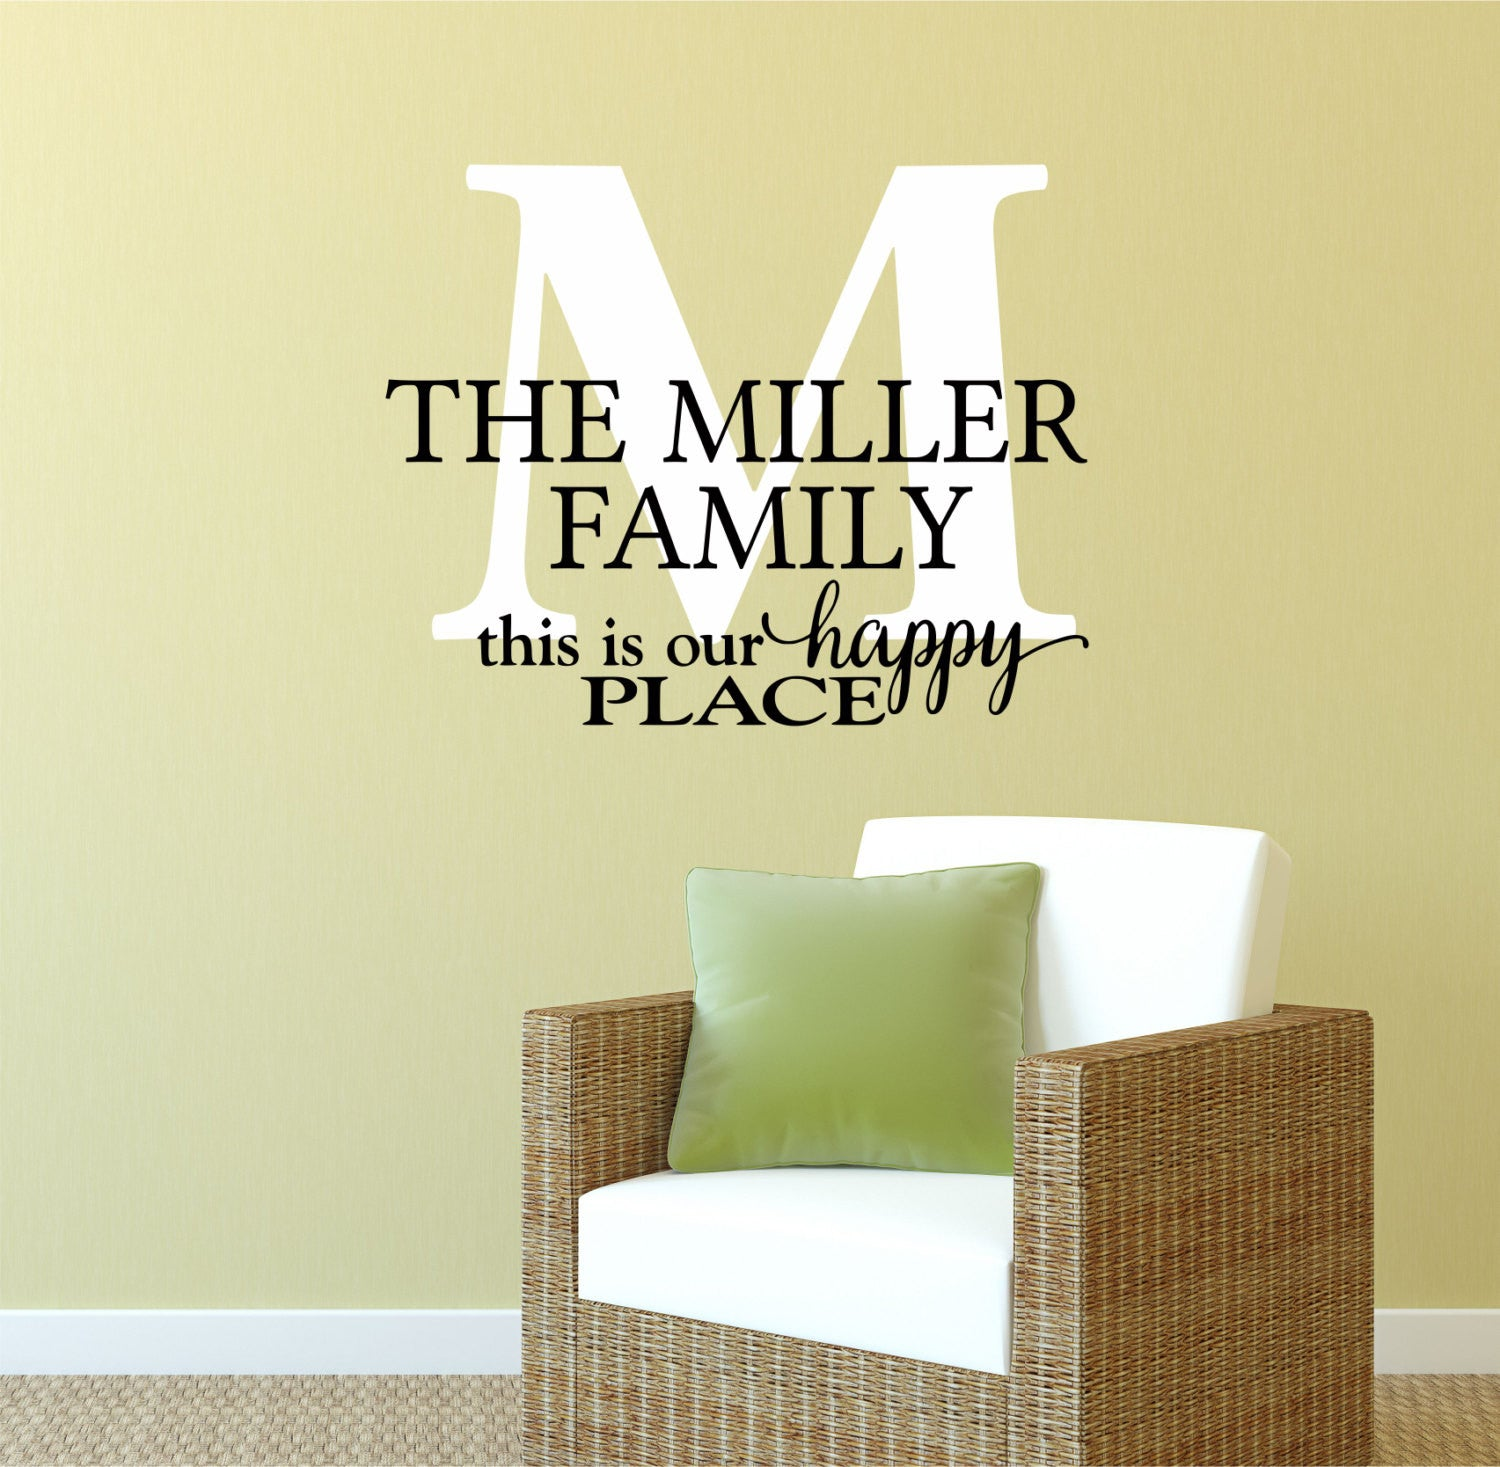 Family Name Decals - by Decor Designs Decals, This Is Our Happy Place